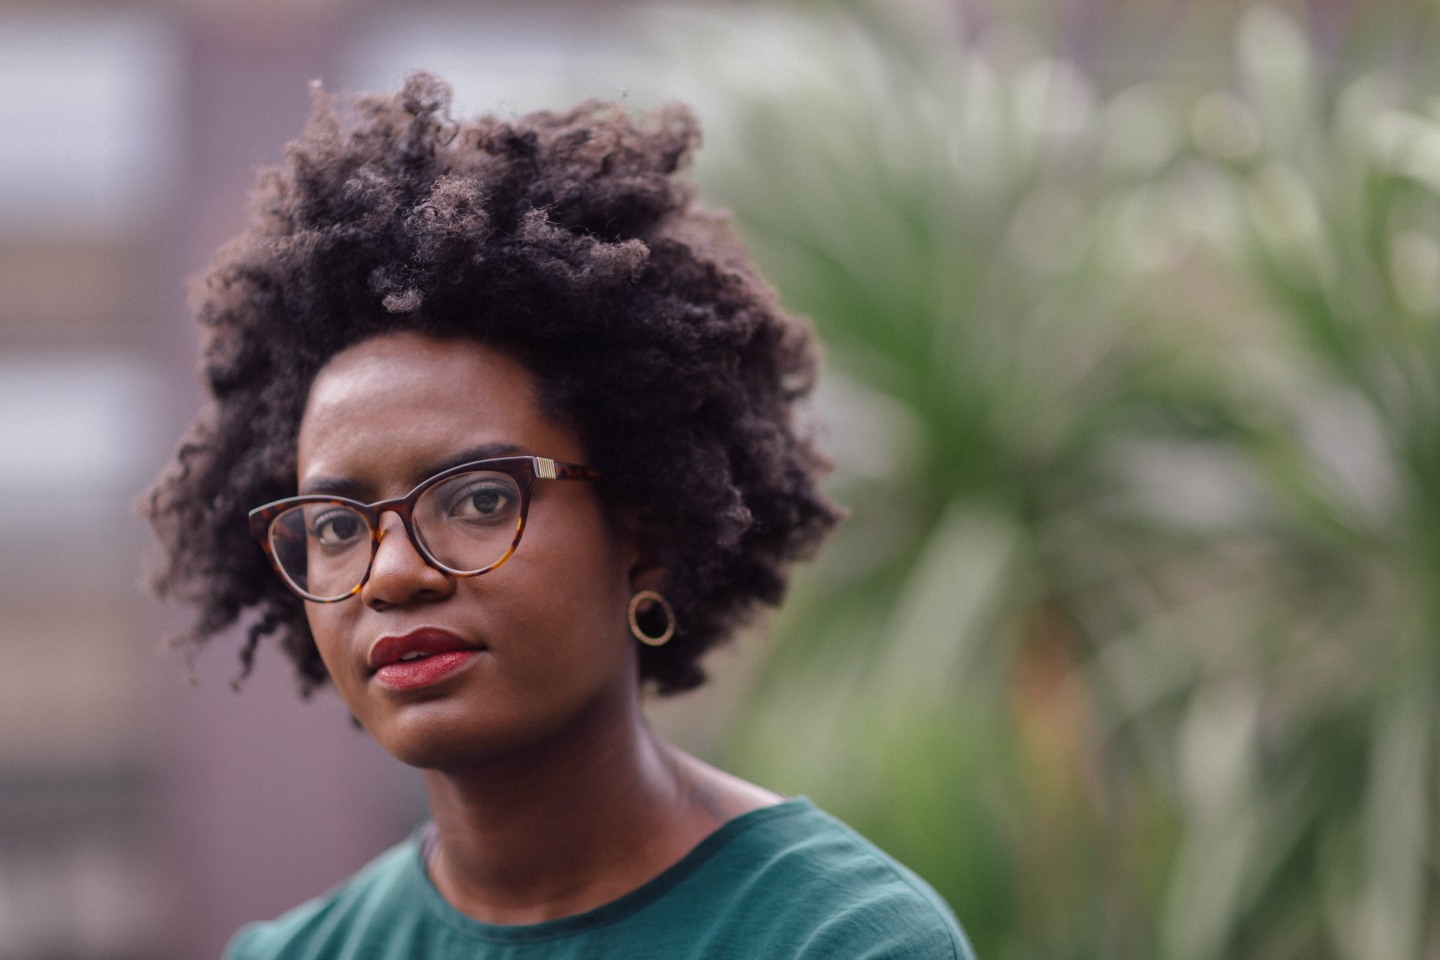 Reni Eddo-Lodge On Her New Book, <i>Why I'm No Longer Talking To White People About Race</i>